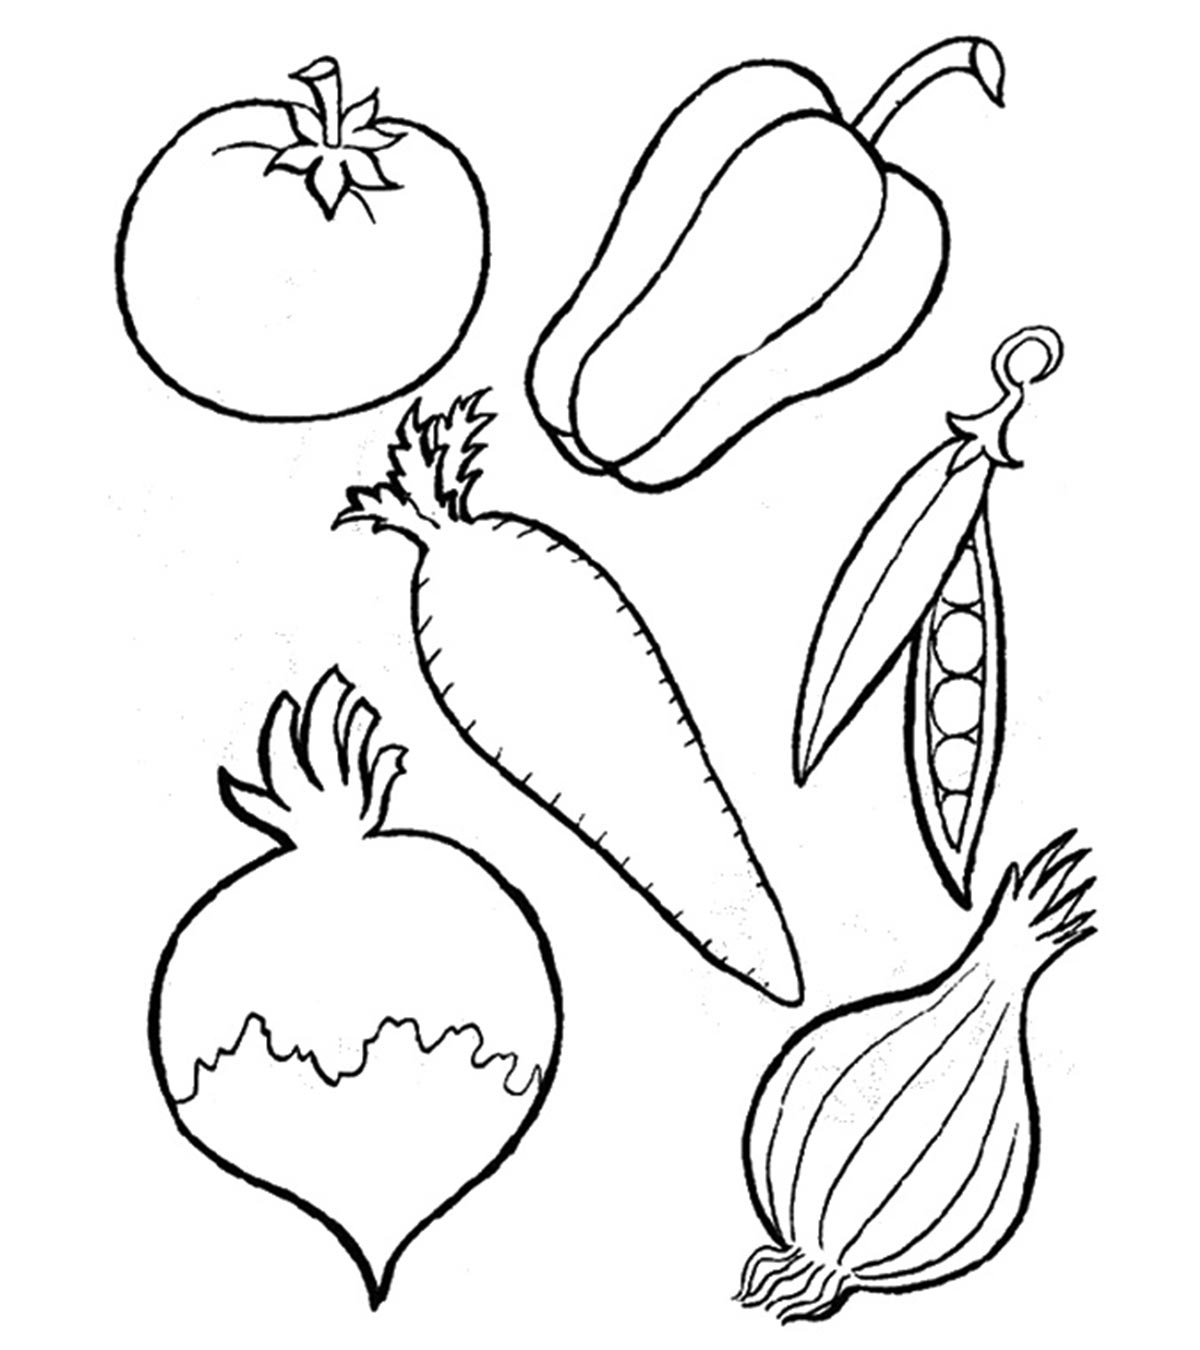 Top 3 Free Printable Vegetables Coloring Pages Online